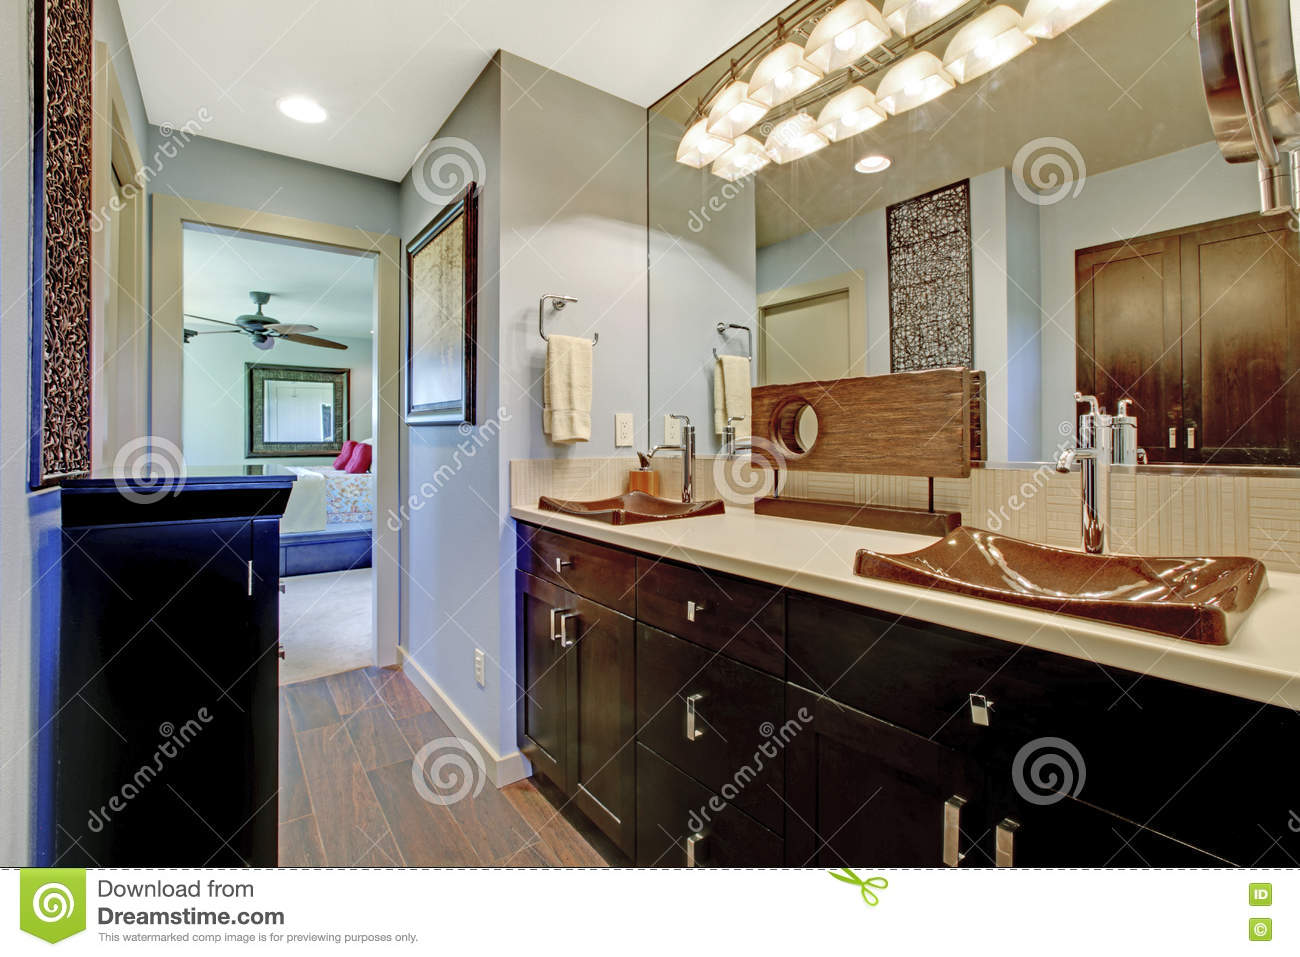 blue and brown bathroom interior with black brown cabinets and large mirror stock photo image. Black Bedroom Furniture Sets. Home Design Ideas